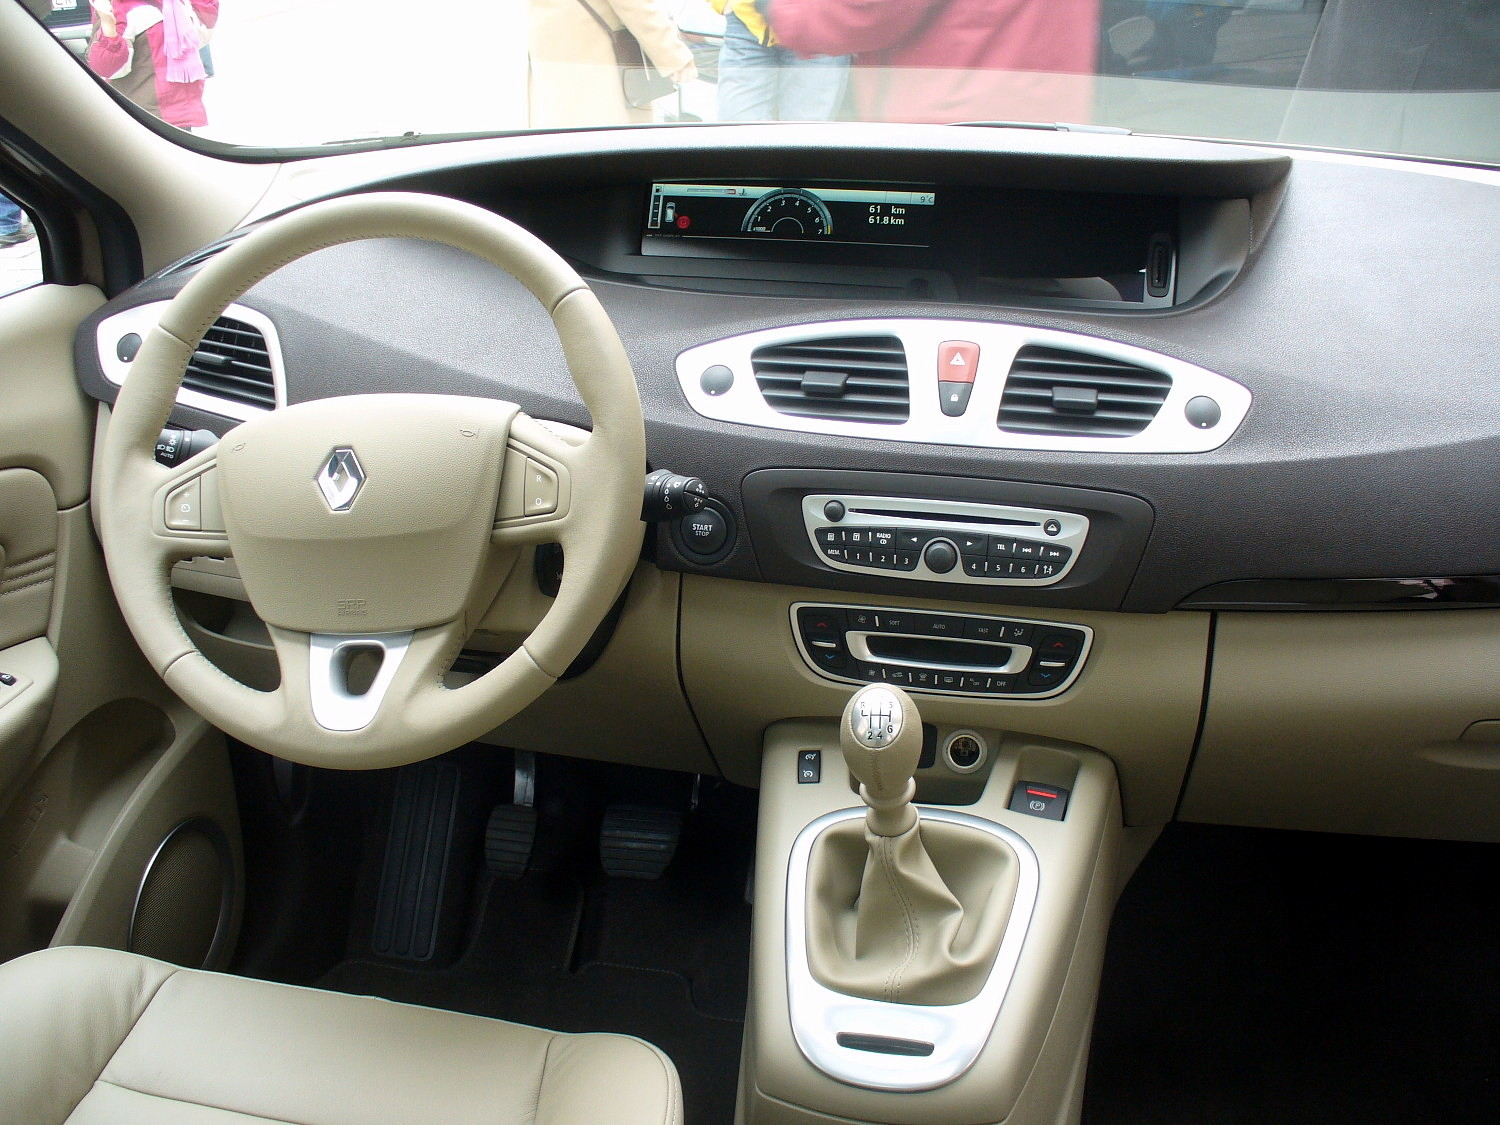 2011 renault scenic ii pictures information and specs. Black Bedroom Furniture Sets. Home Design Ideas